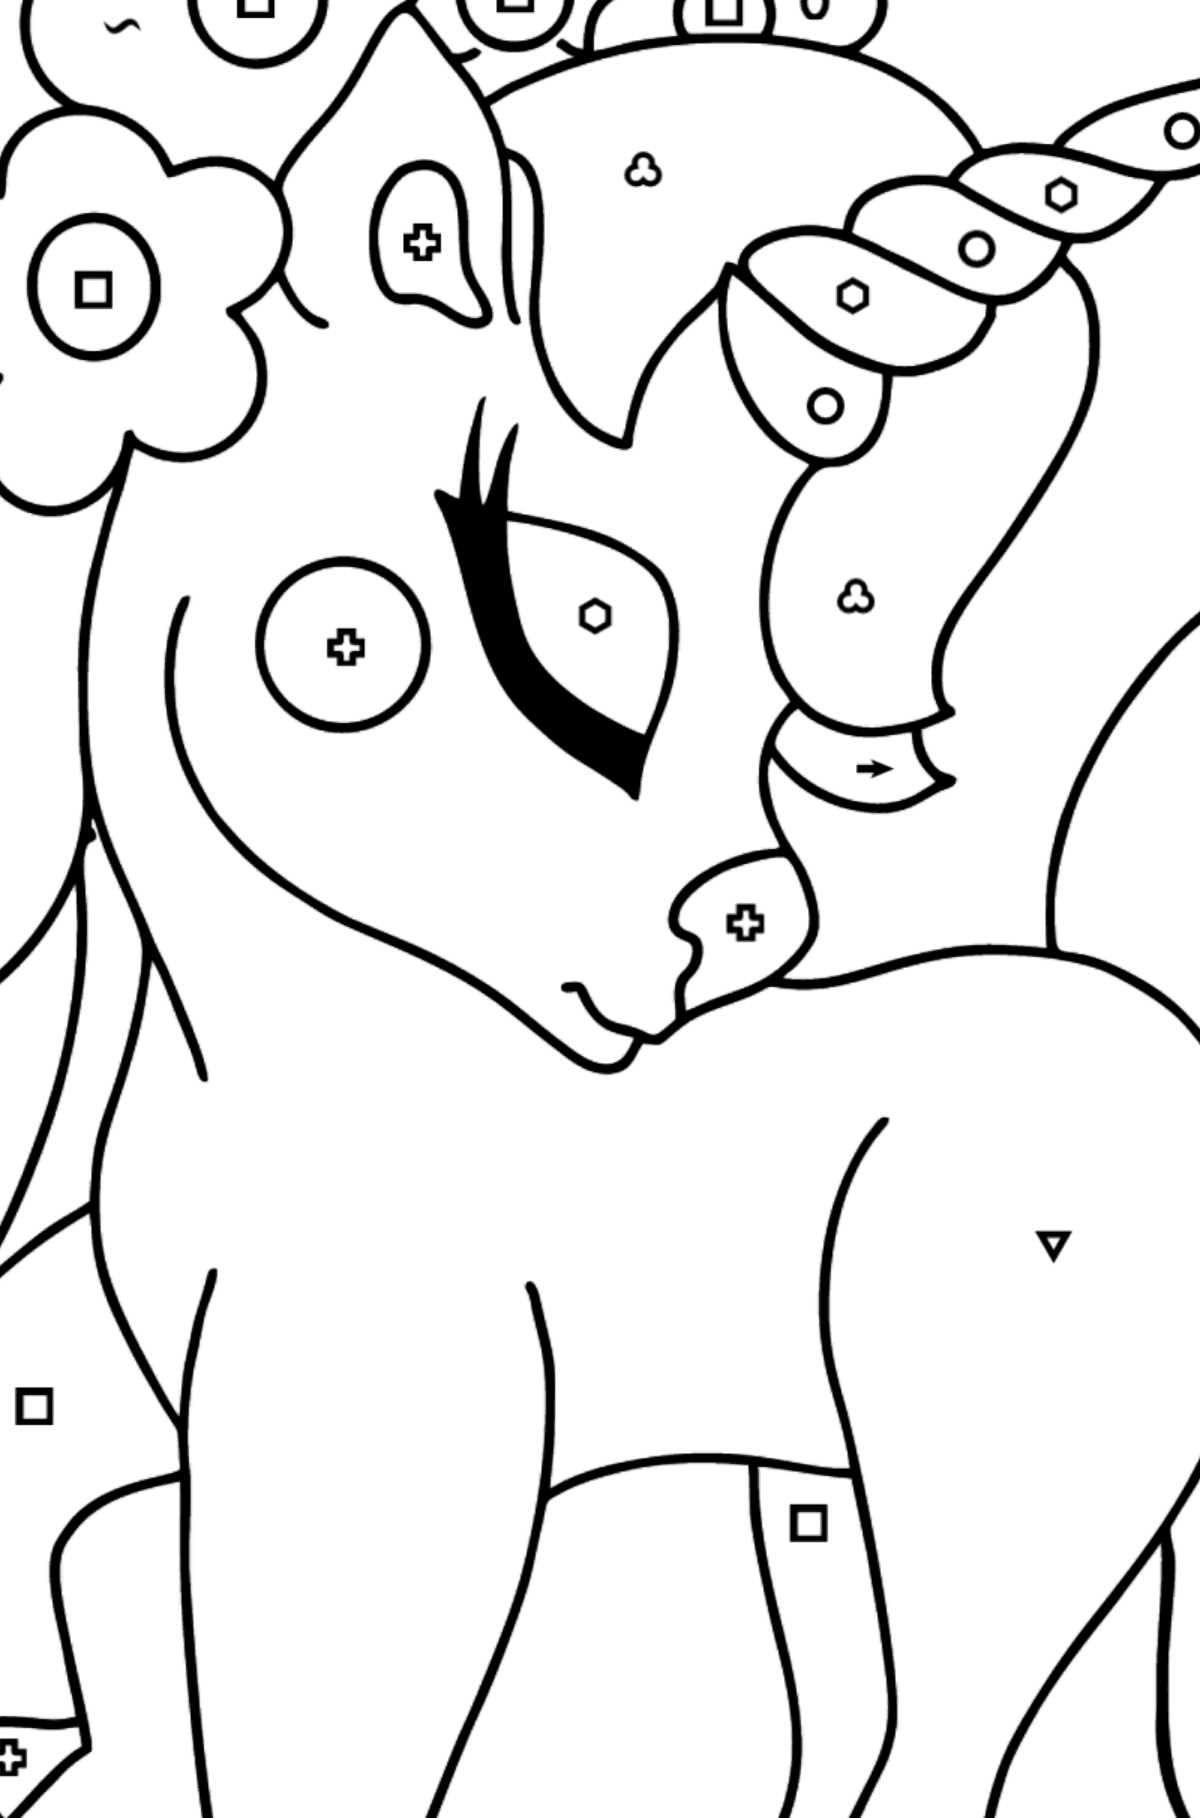 Coloring Page - A Dreamy Unicorn - Coloring by Symbols and Geometric Shapes for Kids